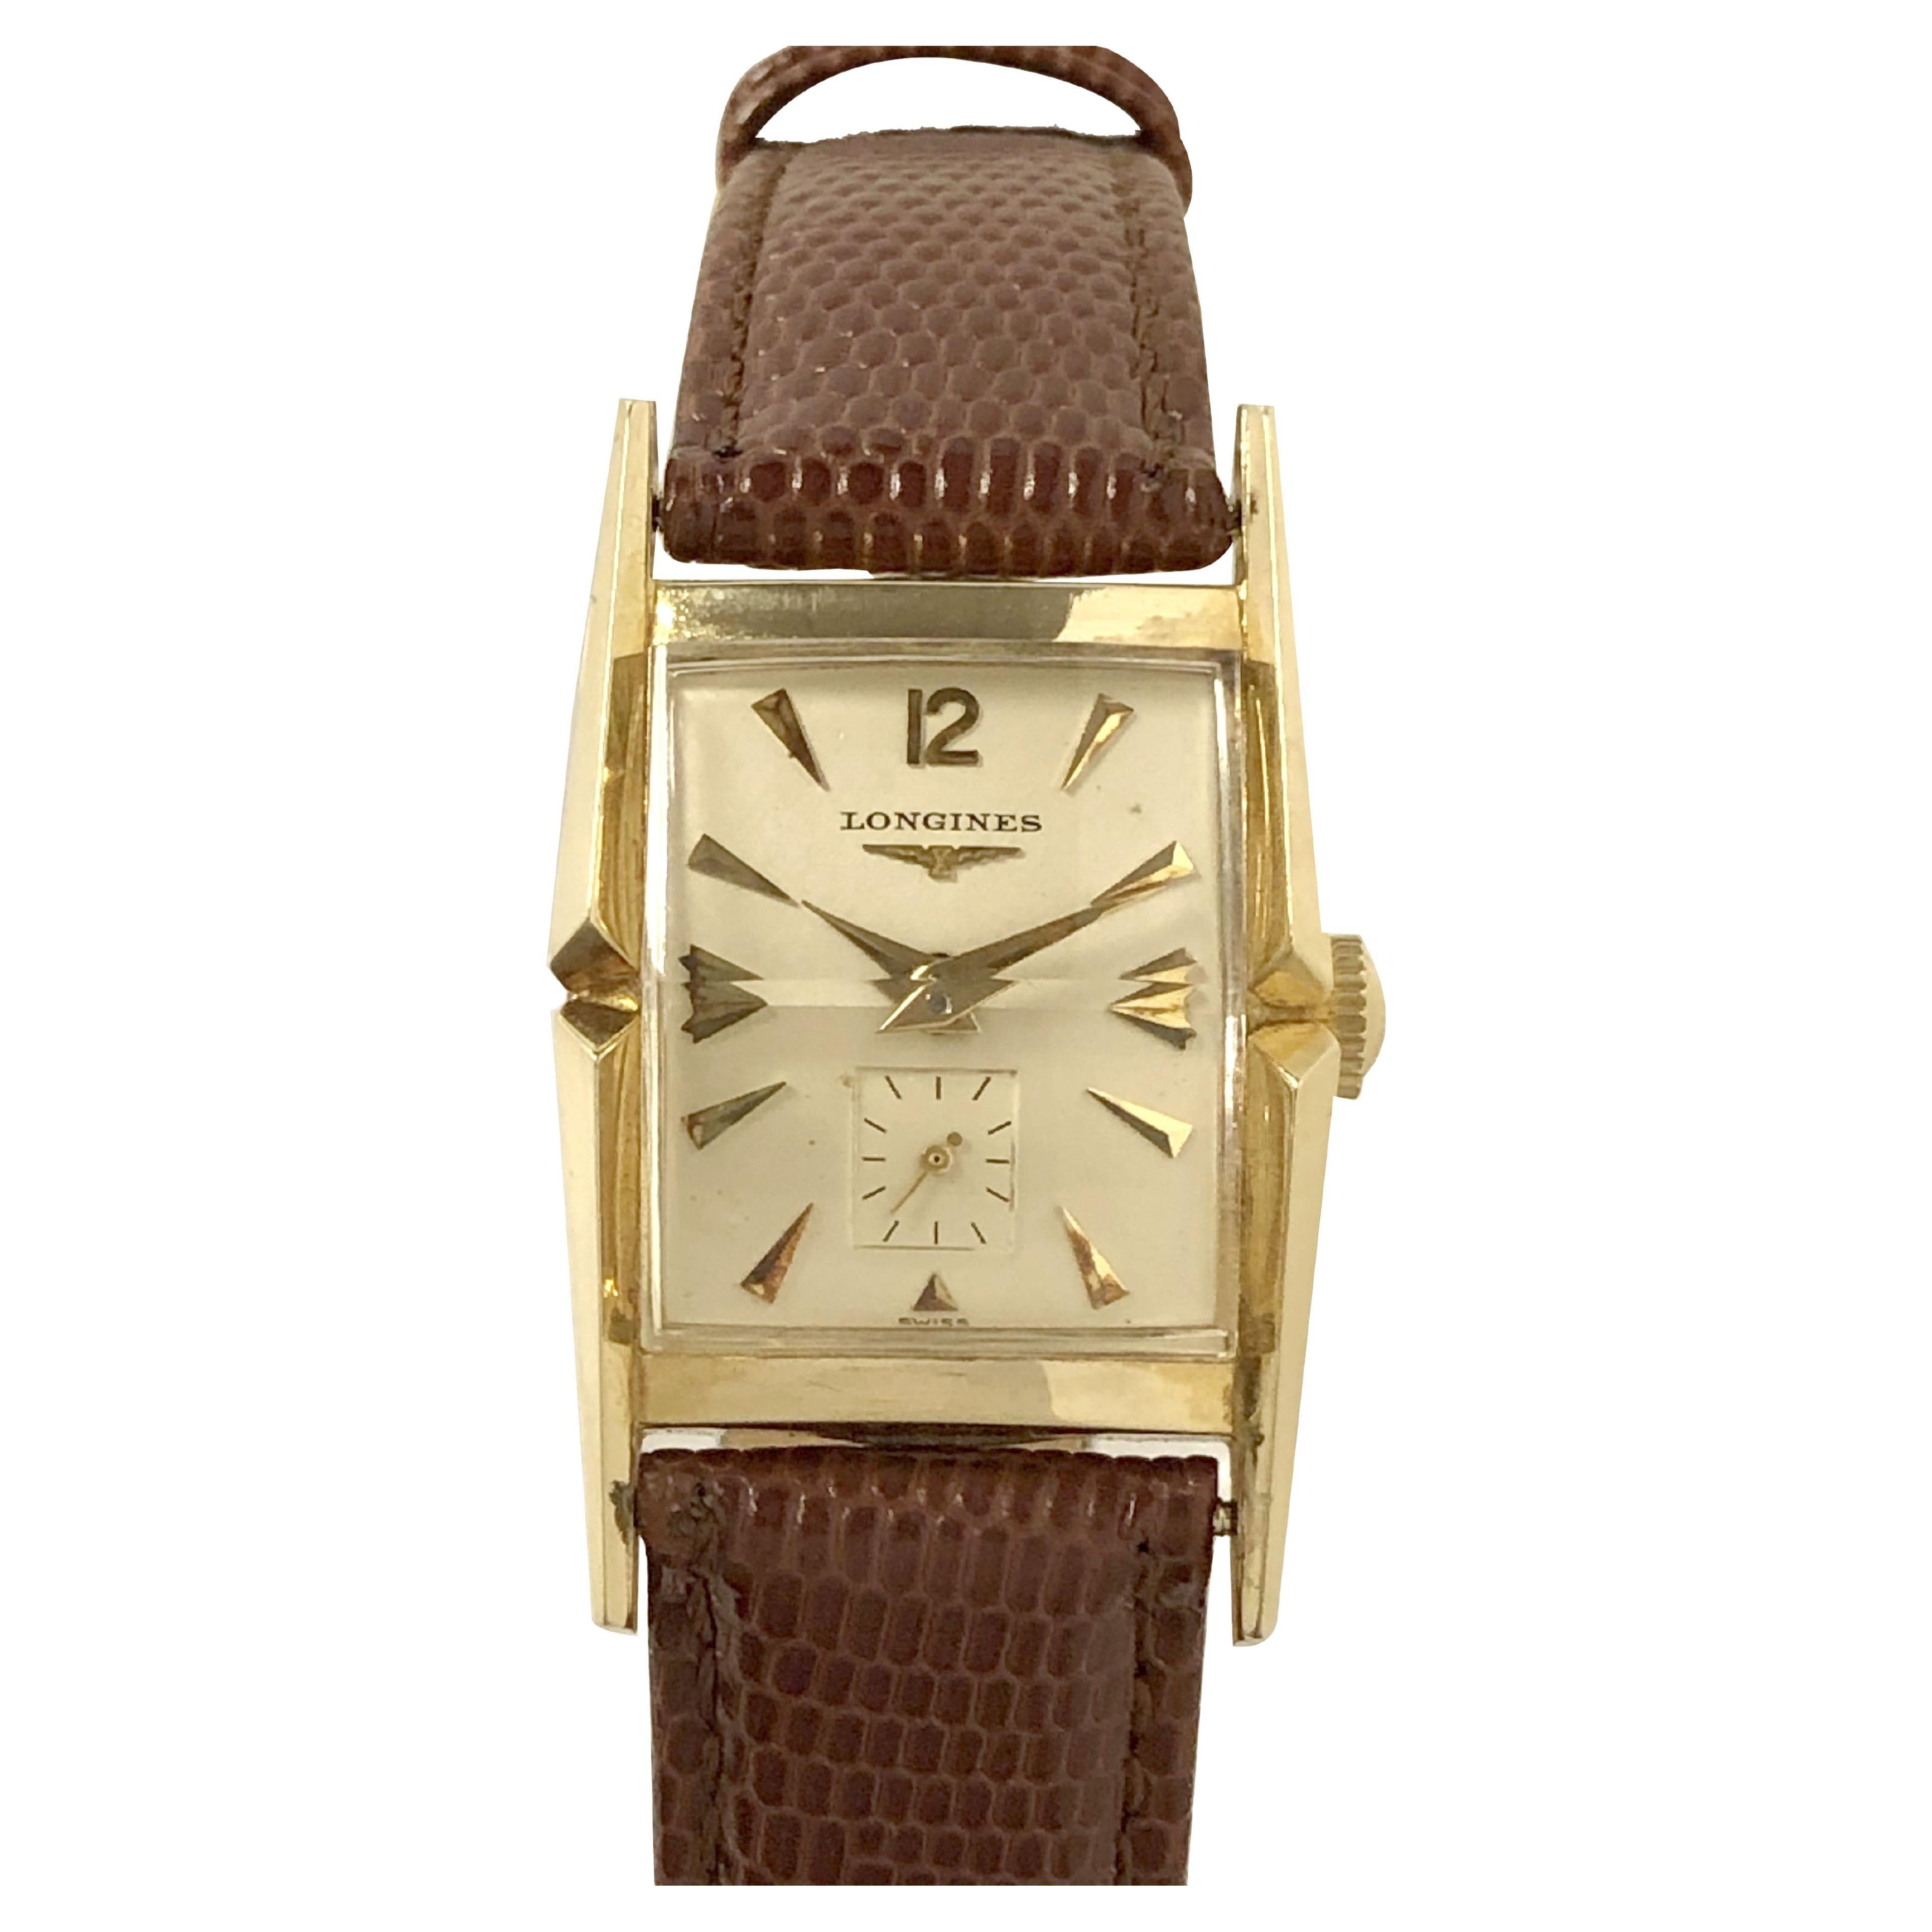 Longines Vintage Yellow Gold Flared Case Wrist Watch